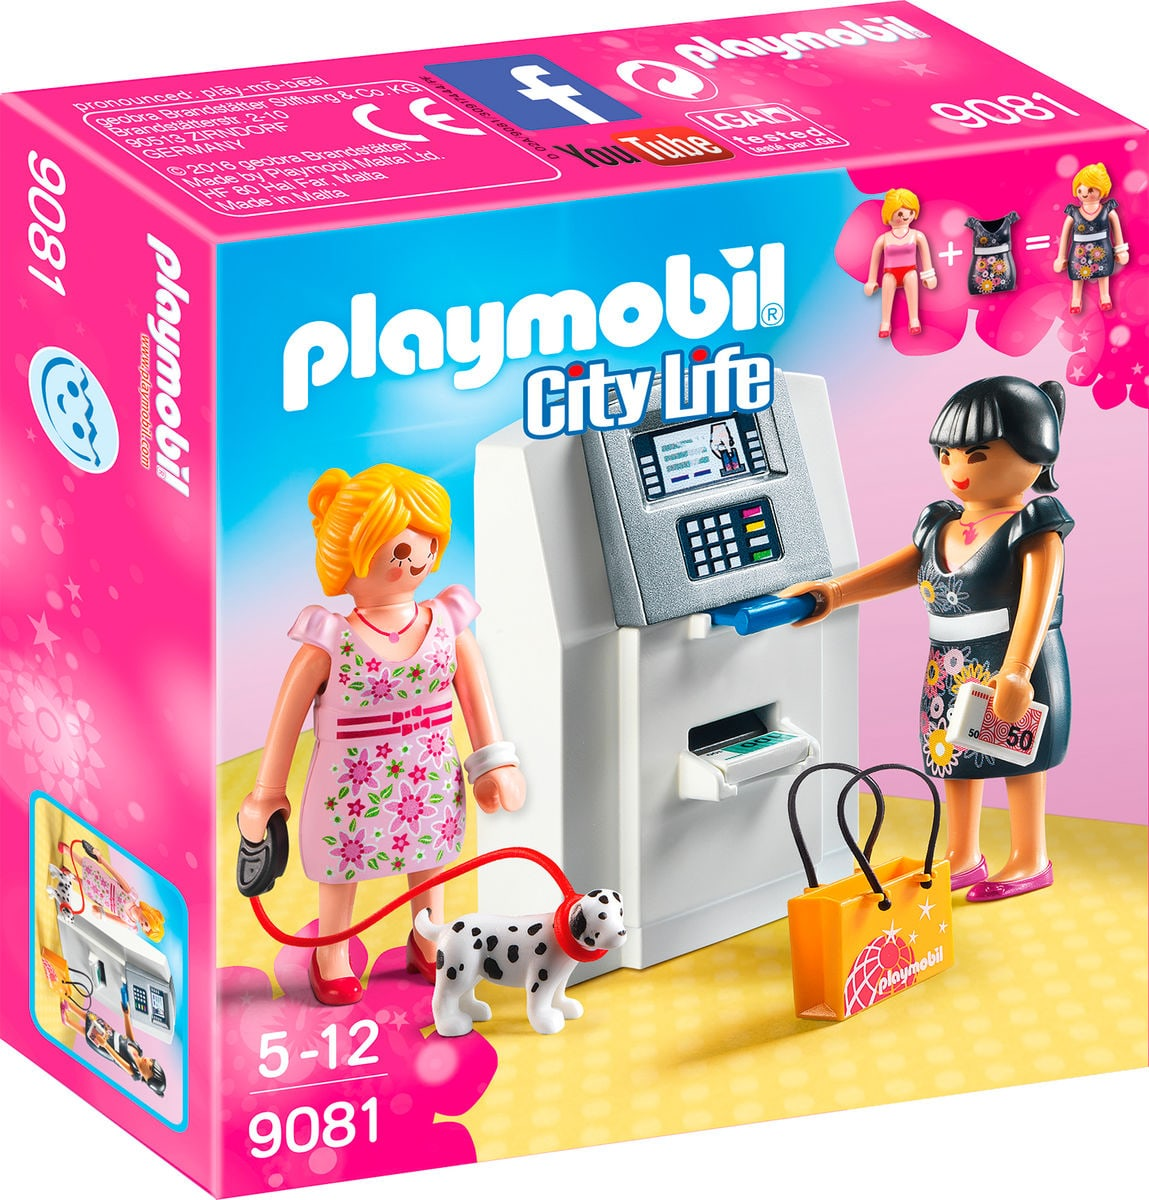 Playmobil City Life Distributeur automatique 9081